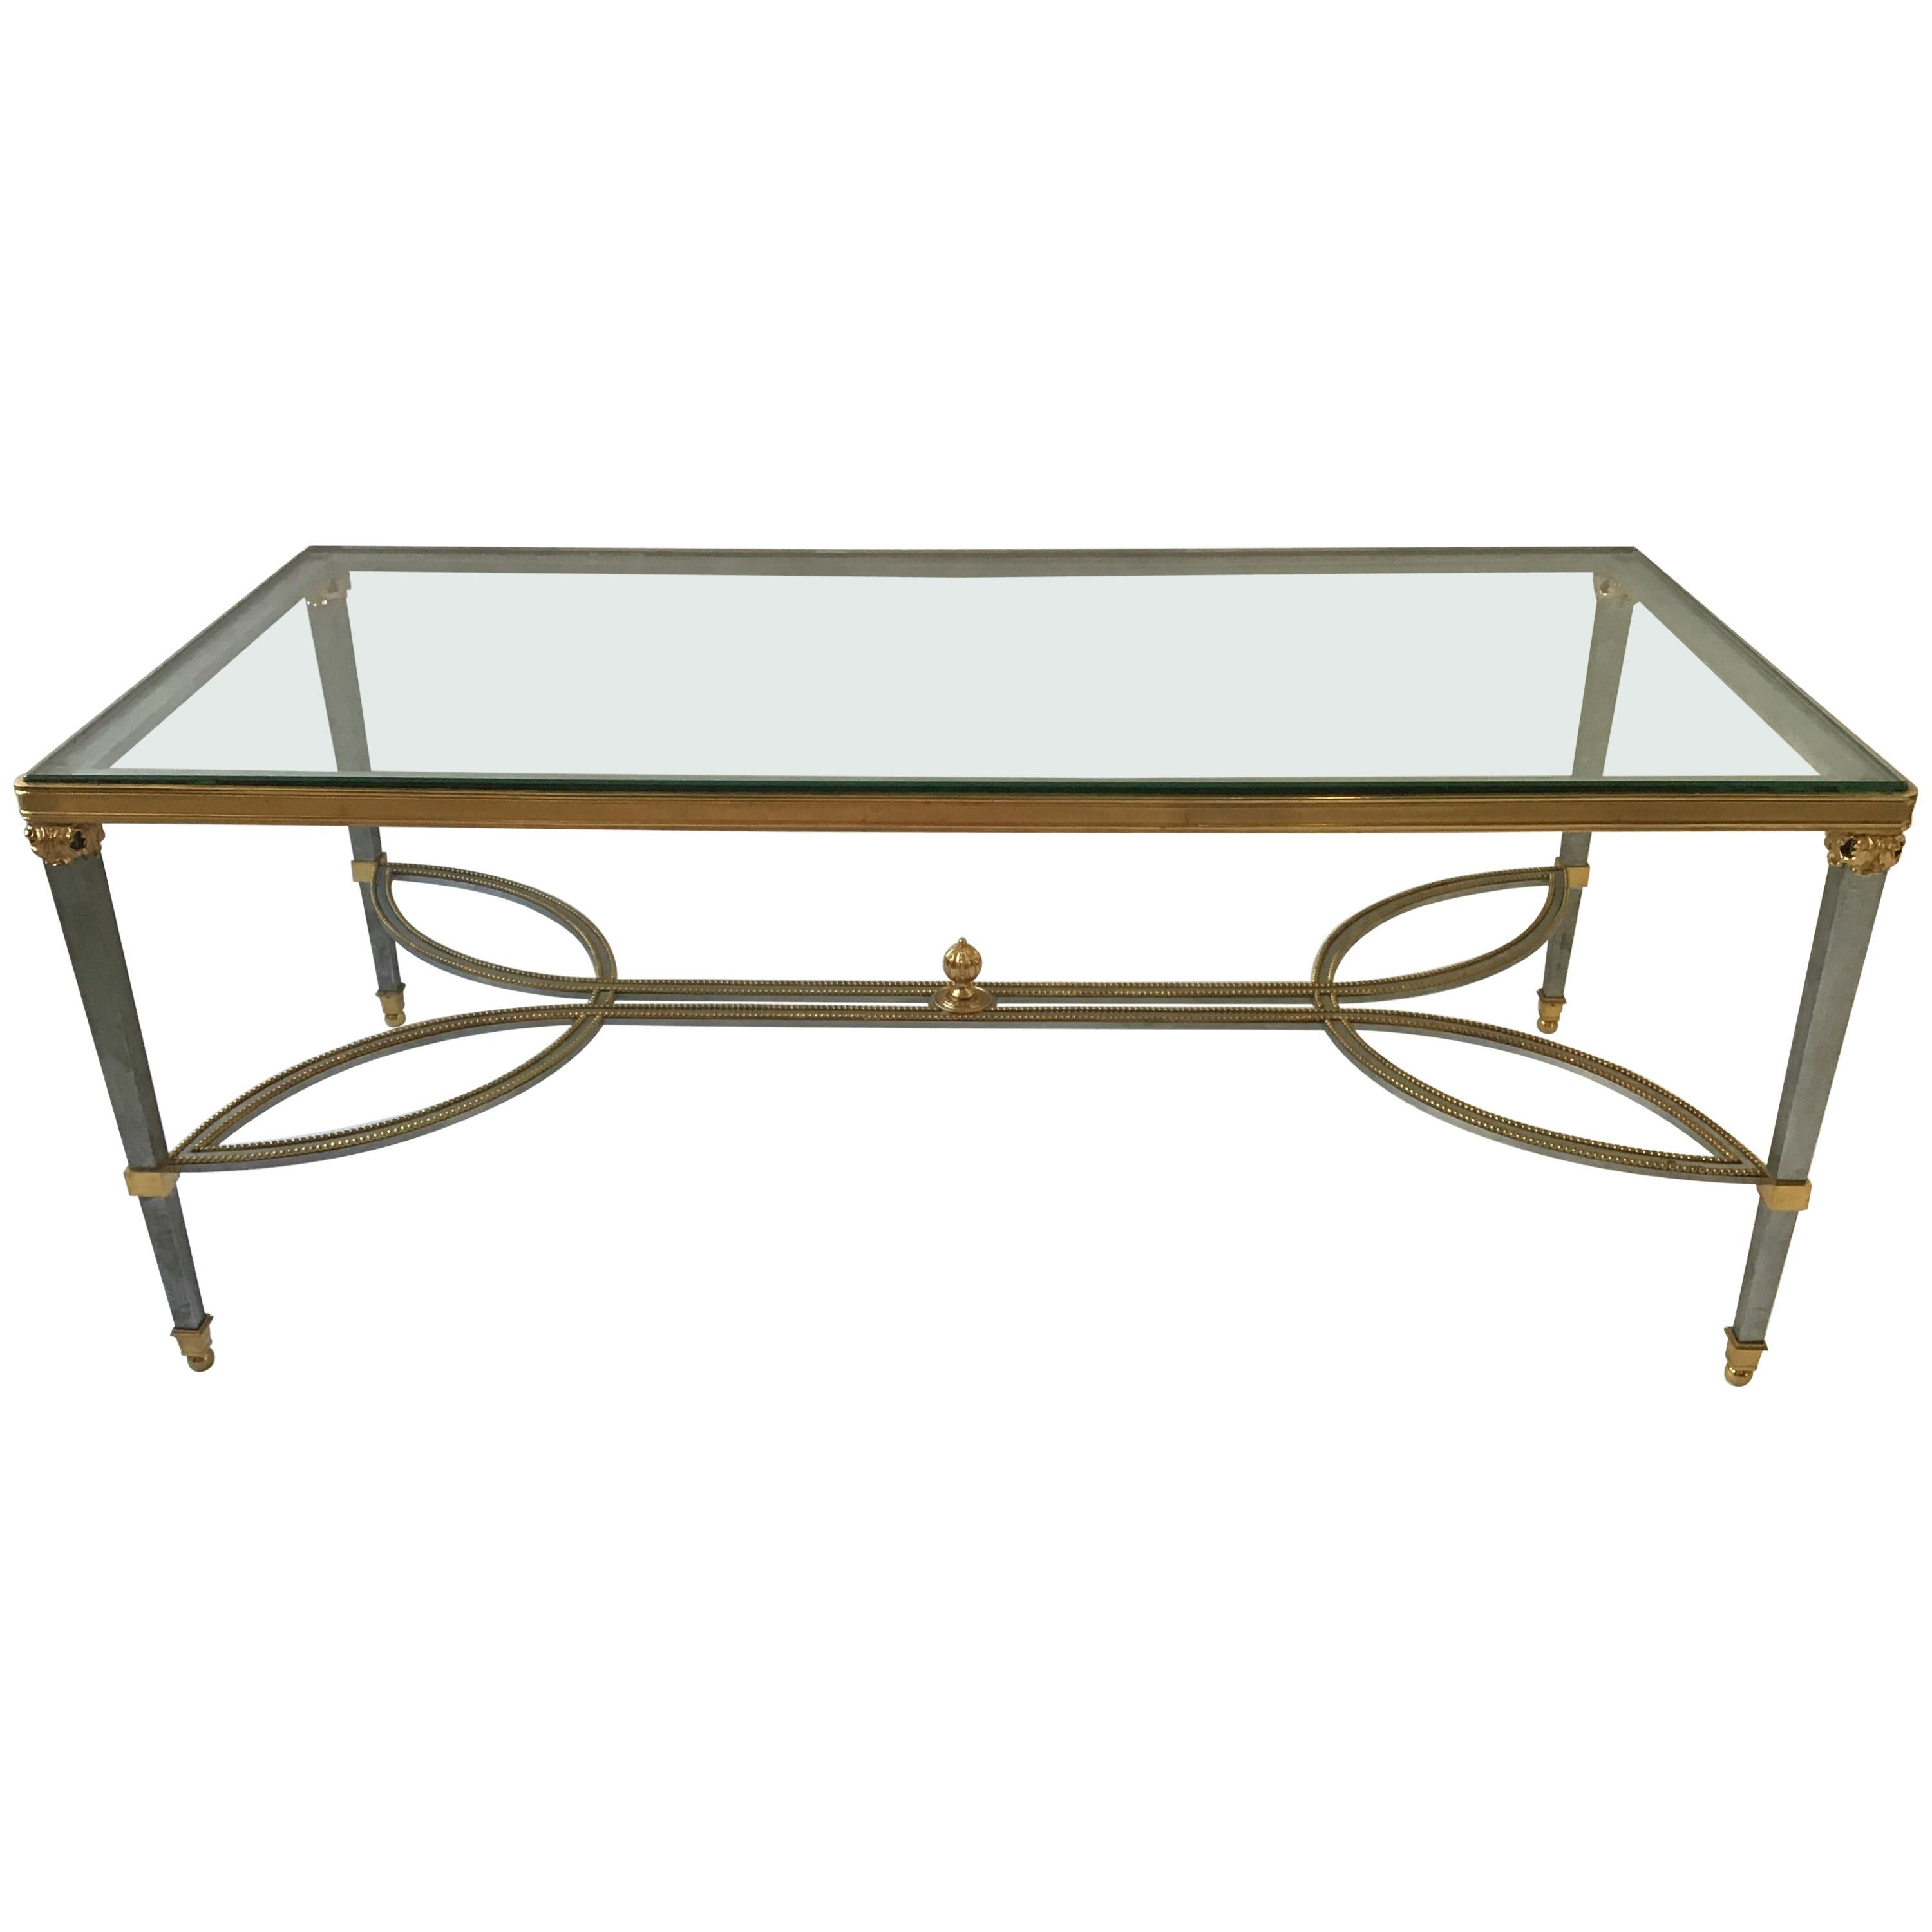 Brushed Steel and Gold-Plated Elegant Cocktail Table